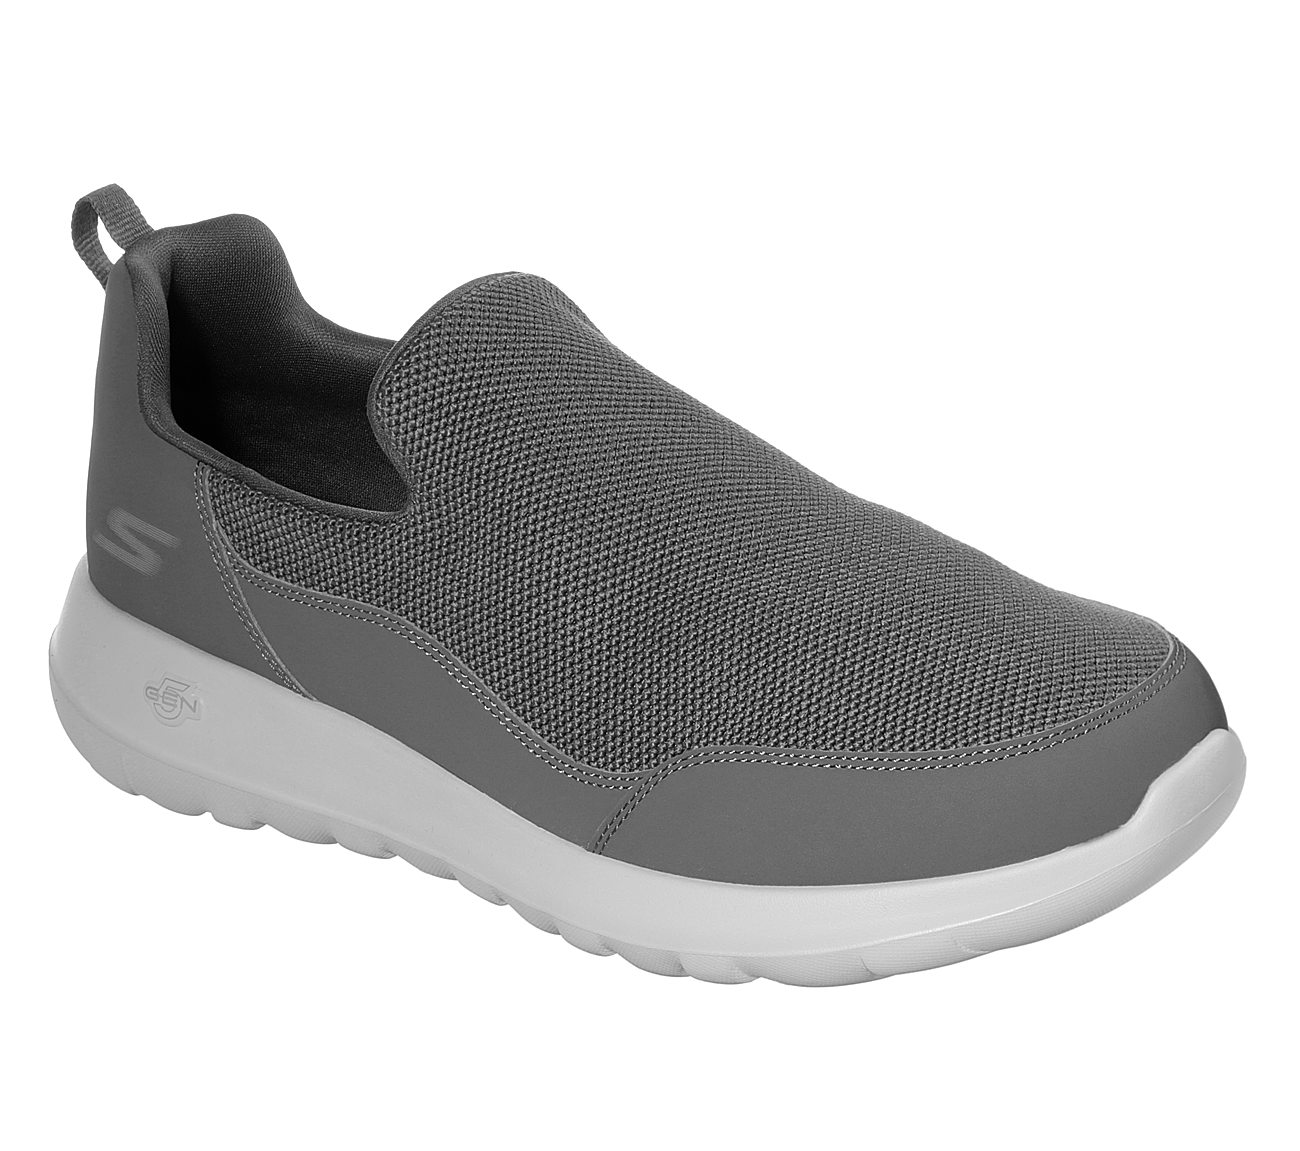 Shoes Skechers Privy Max Gowalk Performance Buy pxgwfqvx